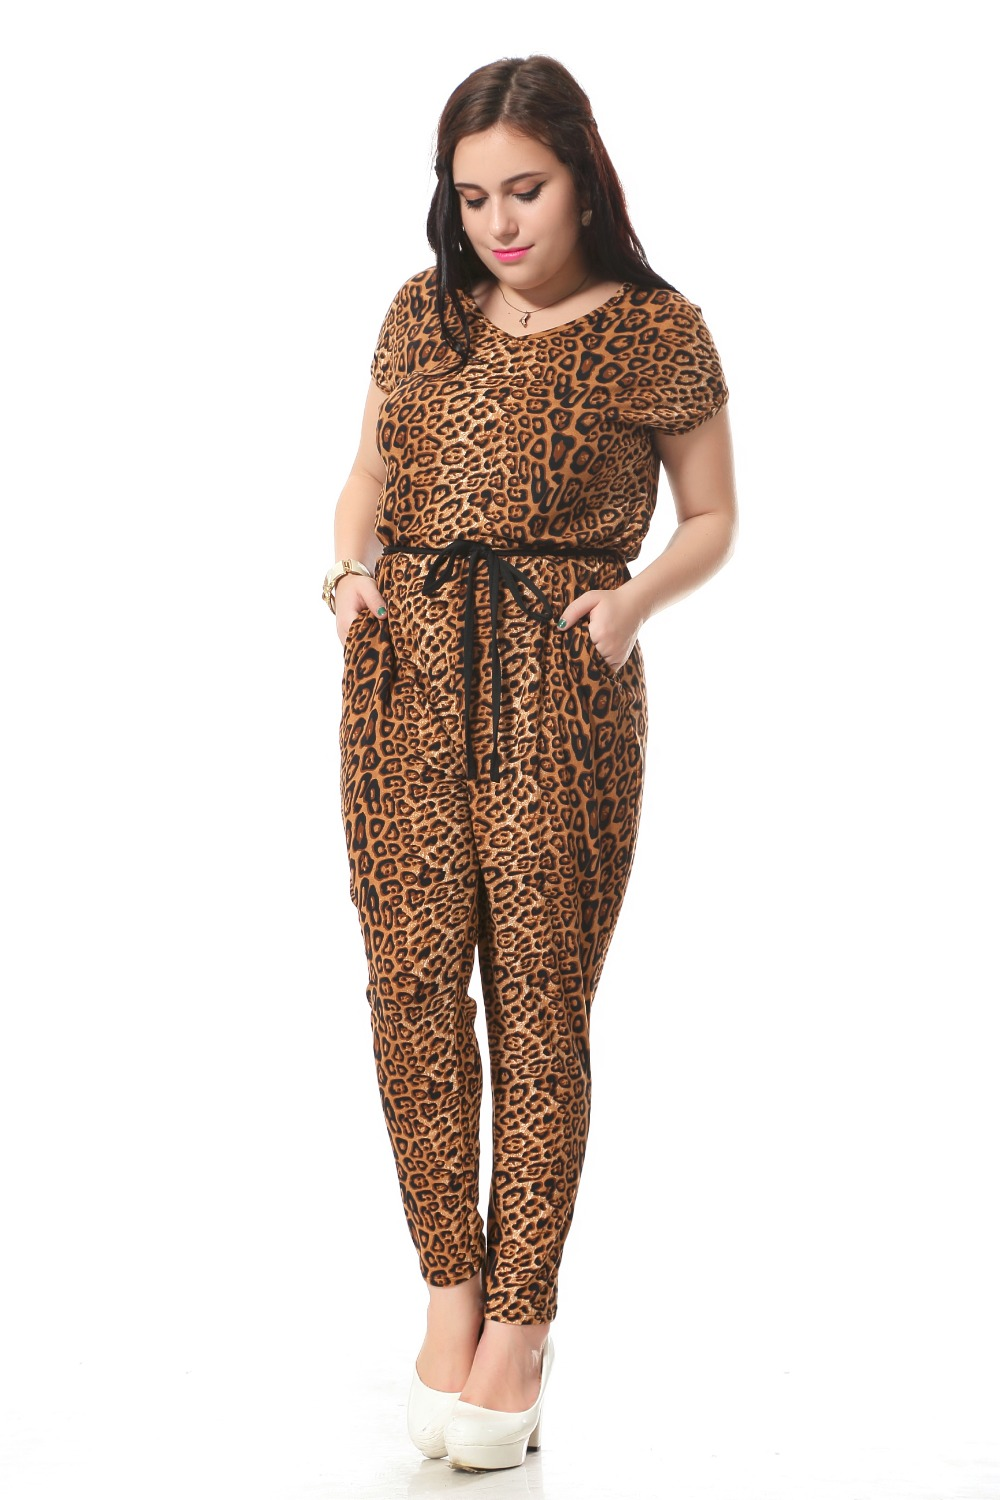 Plus Size Leopard Print Jumpsuits For Women With Sashes Sexy V Neck Jumpsuit Summer Loose Cotton ...